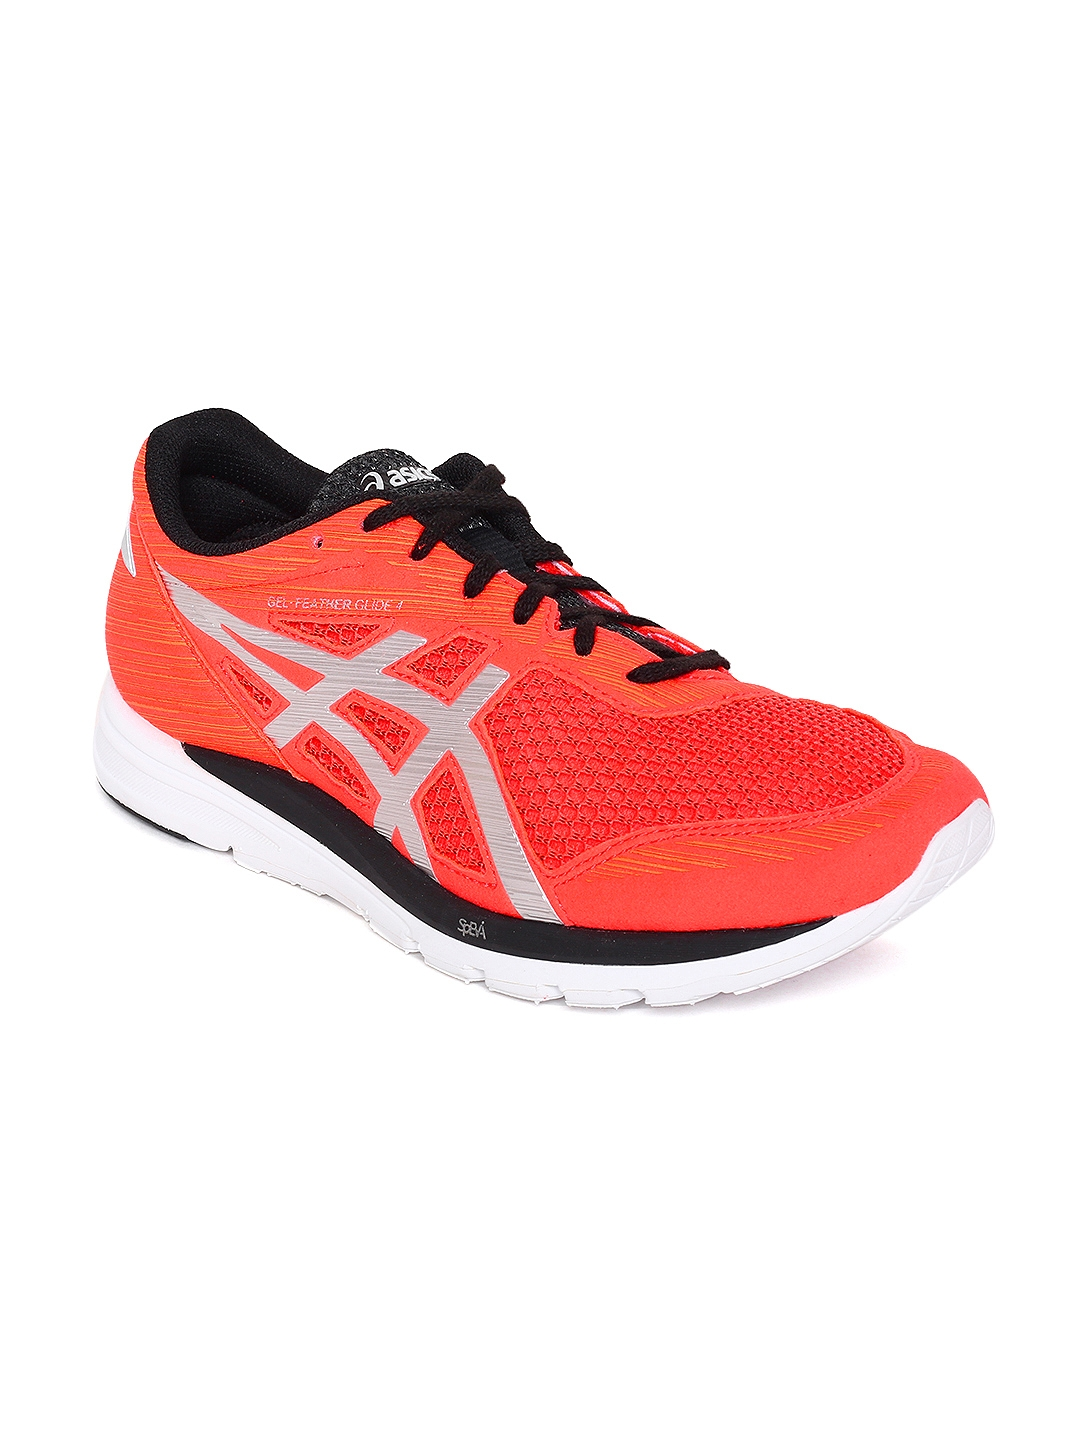 new style ed2f8 e30e1 ASICS Men Coral Orange GEL-FEATHER GLIDE 4 Running Shoes